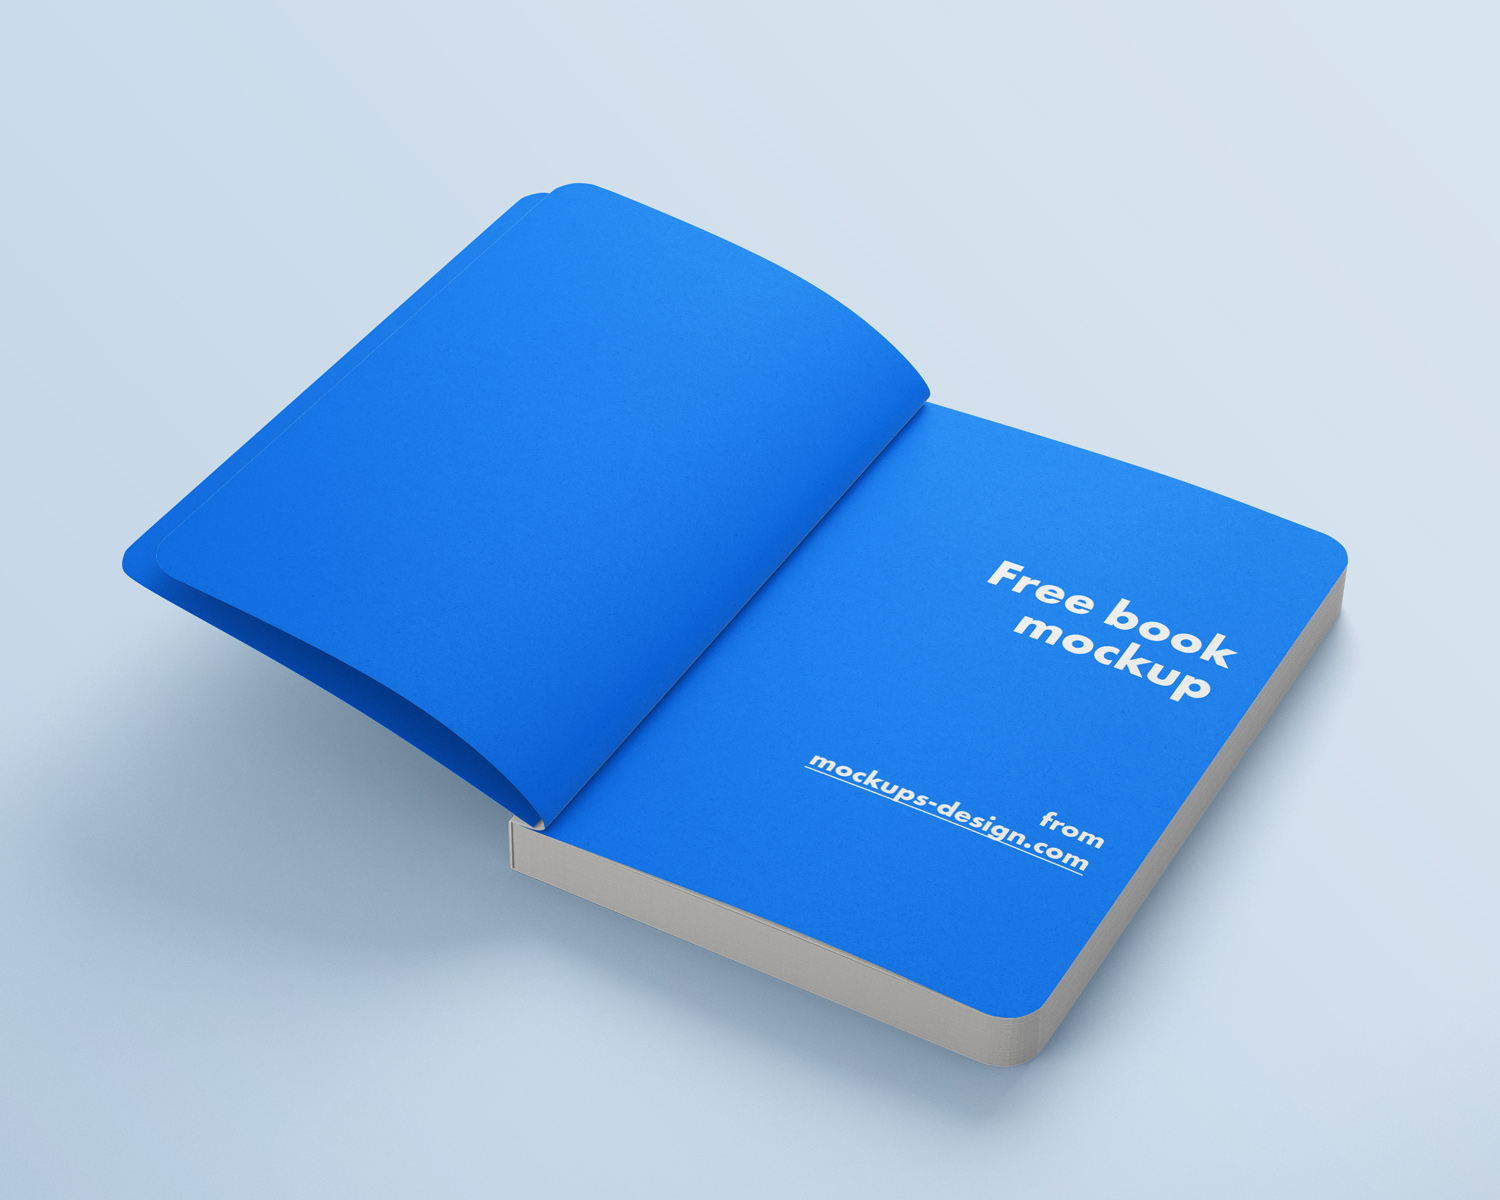 Free-Book-with-Rounded-Corners-Mockup-04